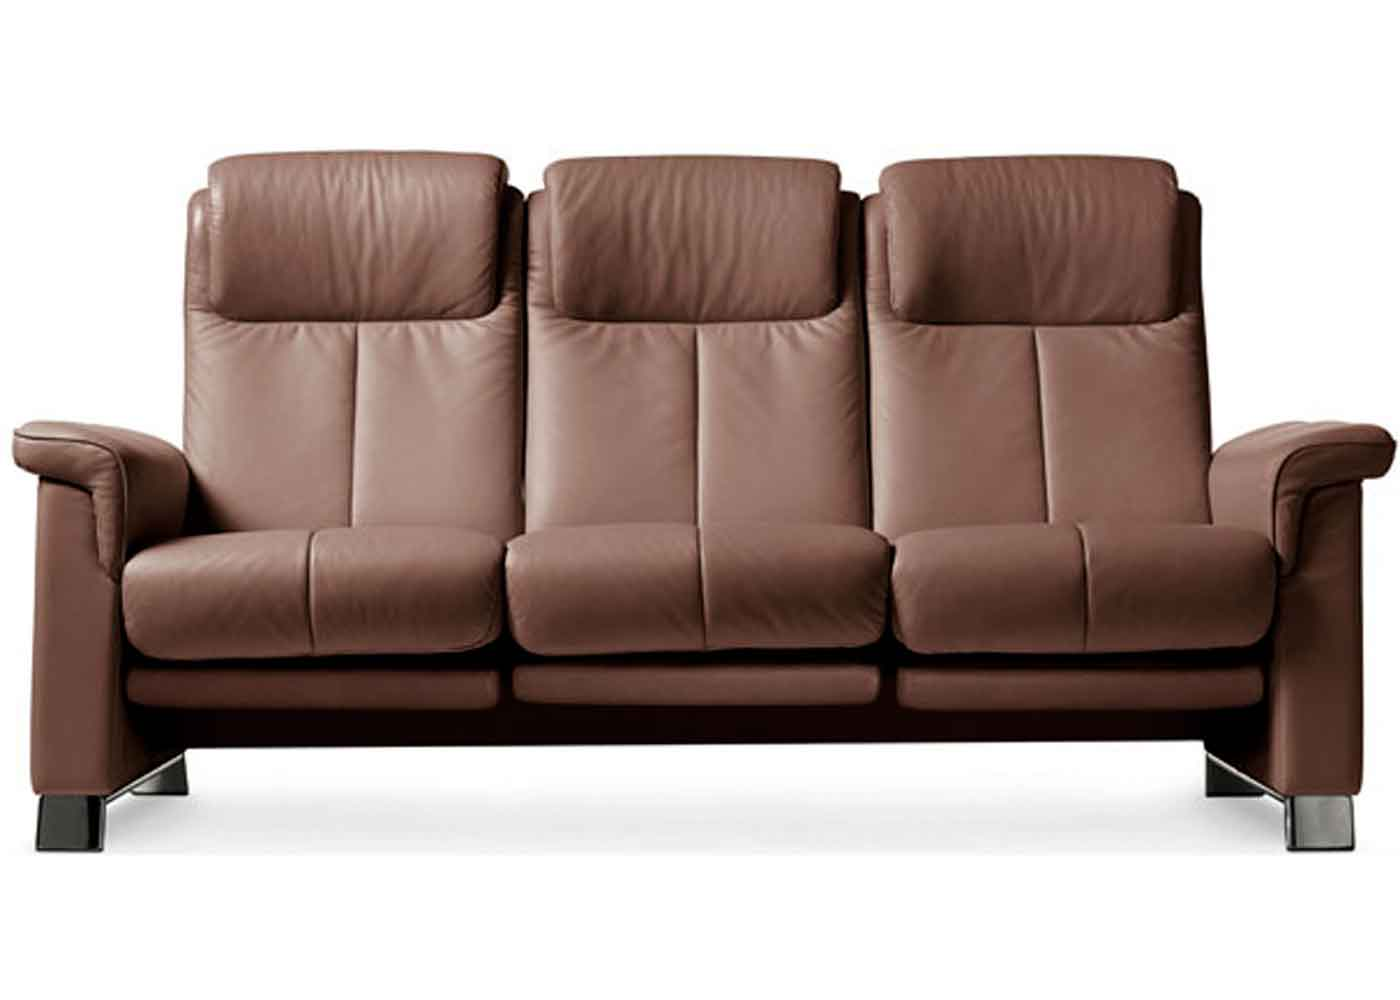 sofas for less uk sofa with drawers stressless breeze 3 seater midfurn furniture superstore